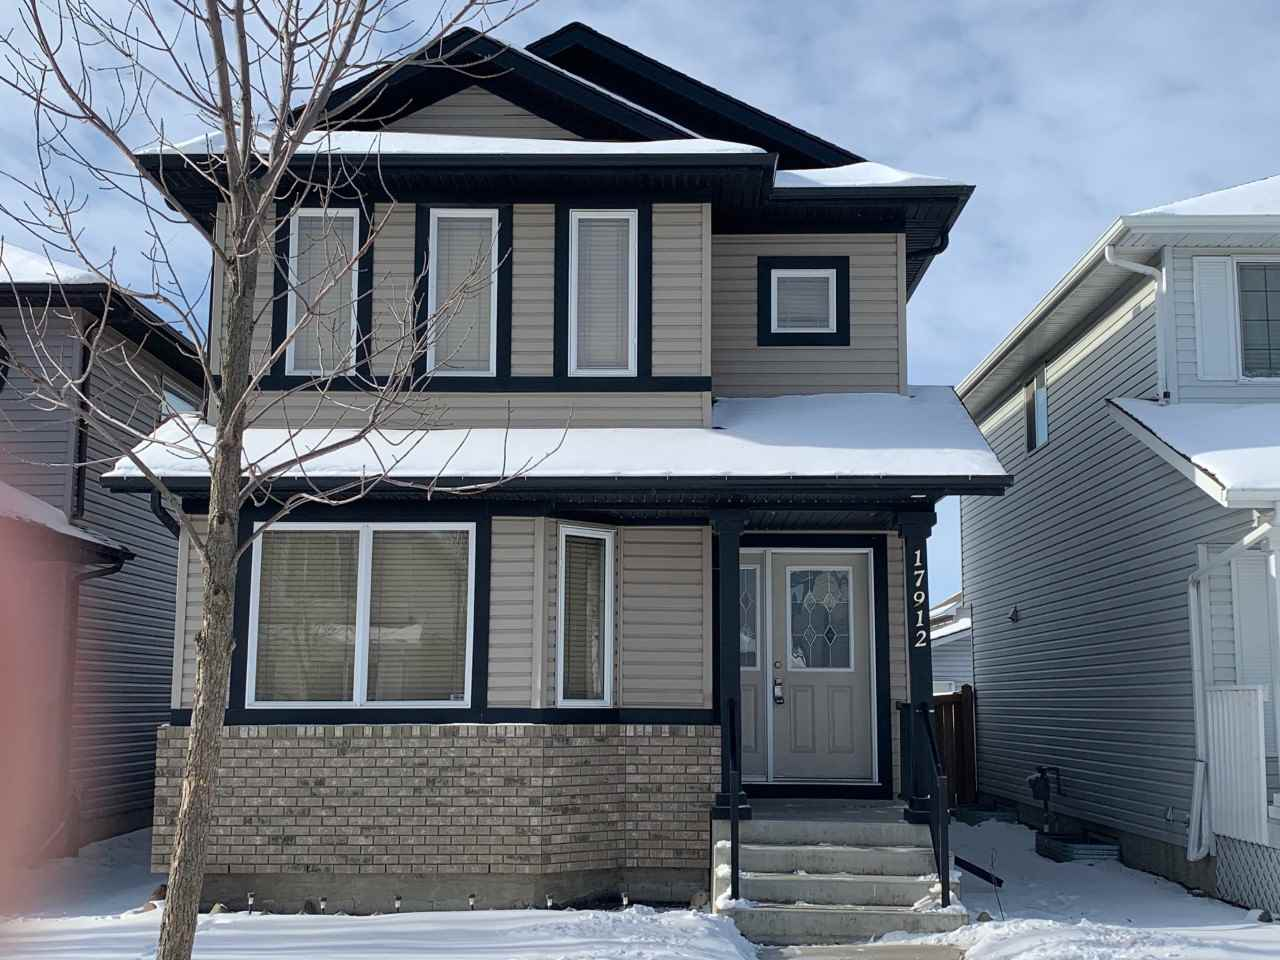 Stunning 1470sf 3 bedroom 2.5 bath 2-Storey.Includes Den/Office on main floor, Good sized kitchen with eating nook, large living room, 2nd floor laundry & clean unspoiled basement. Second floor has master with walk in closet, 2 other bedrooms share a Jack & Jill washroom. NEW RENOVATION INCLUDES-NEWLY PAINTED ENTIRE HOME, VINYL PLANK FLOORING, NEW CARPET, NEW PLUMBING, NEW LIGHT FIXTURES, NEW DOORS & TRIMS, NEW SINKS, NEW TOILETS, NEW STAINLESS STEEL APPLIANCES. Close to public transportation & schools as well as all amenities.